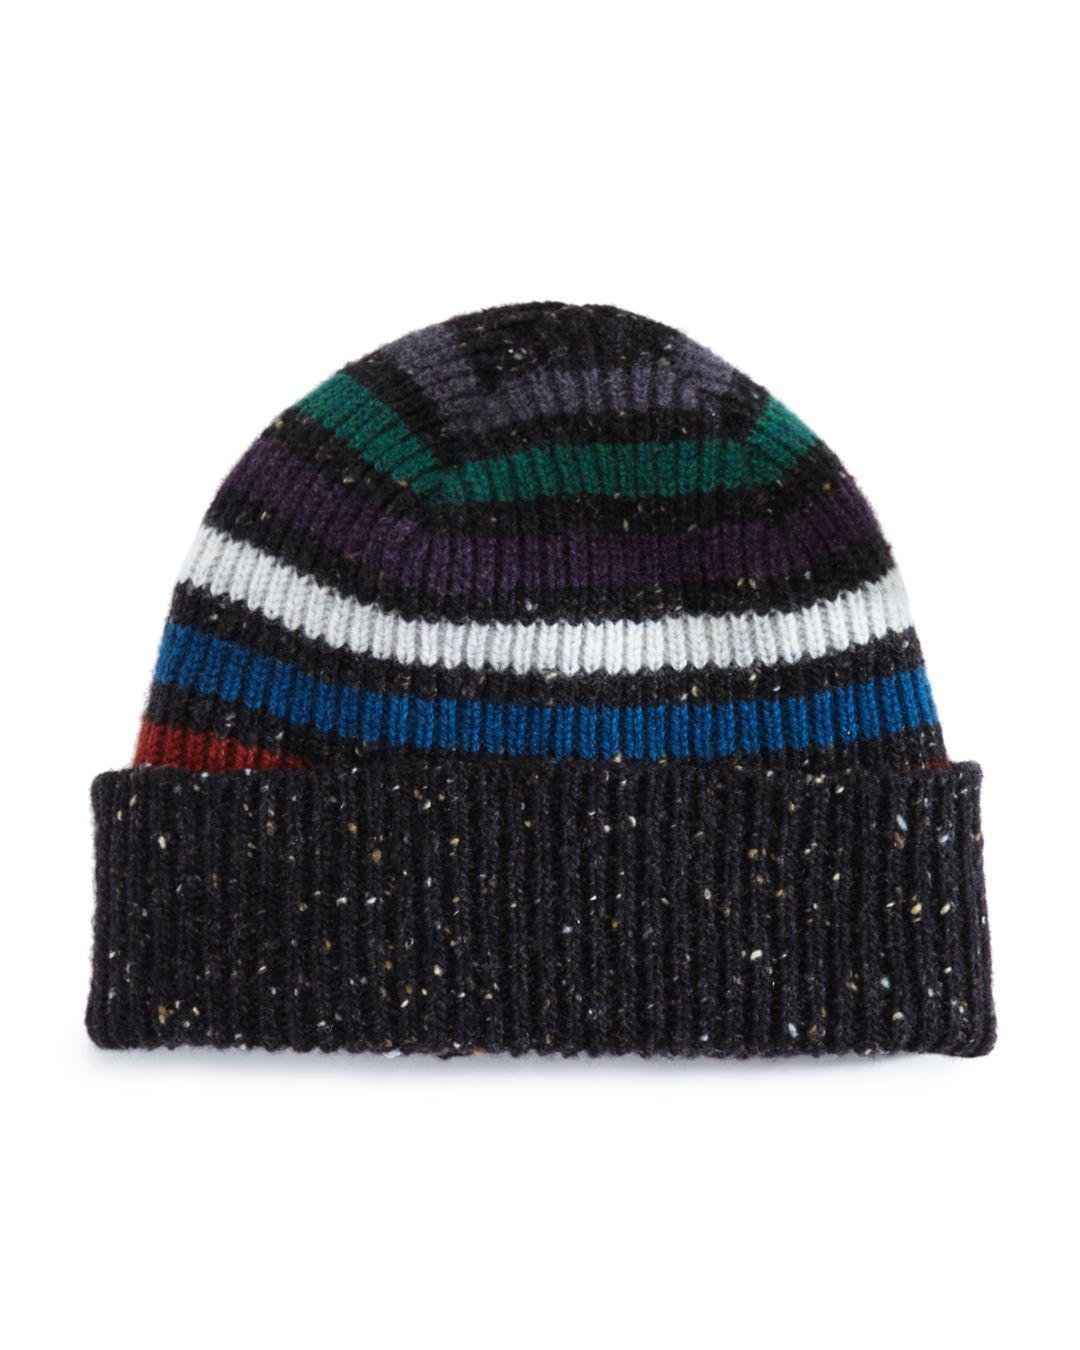 17dd07a0a7d Lyst - Paul Smith Donegal Striped Beanie in Black for Men